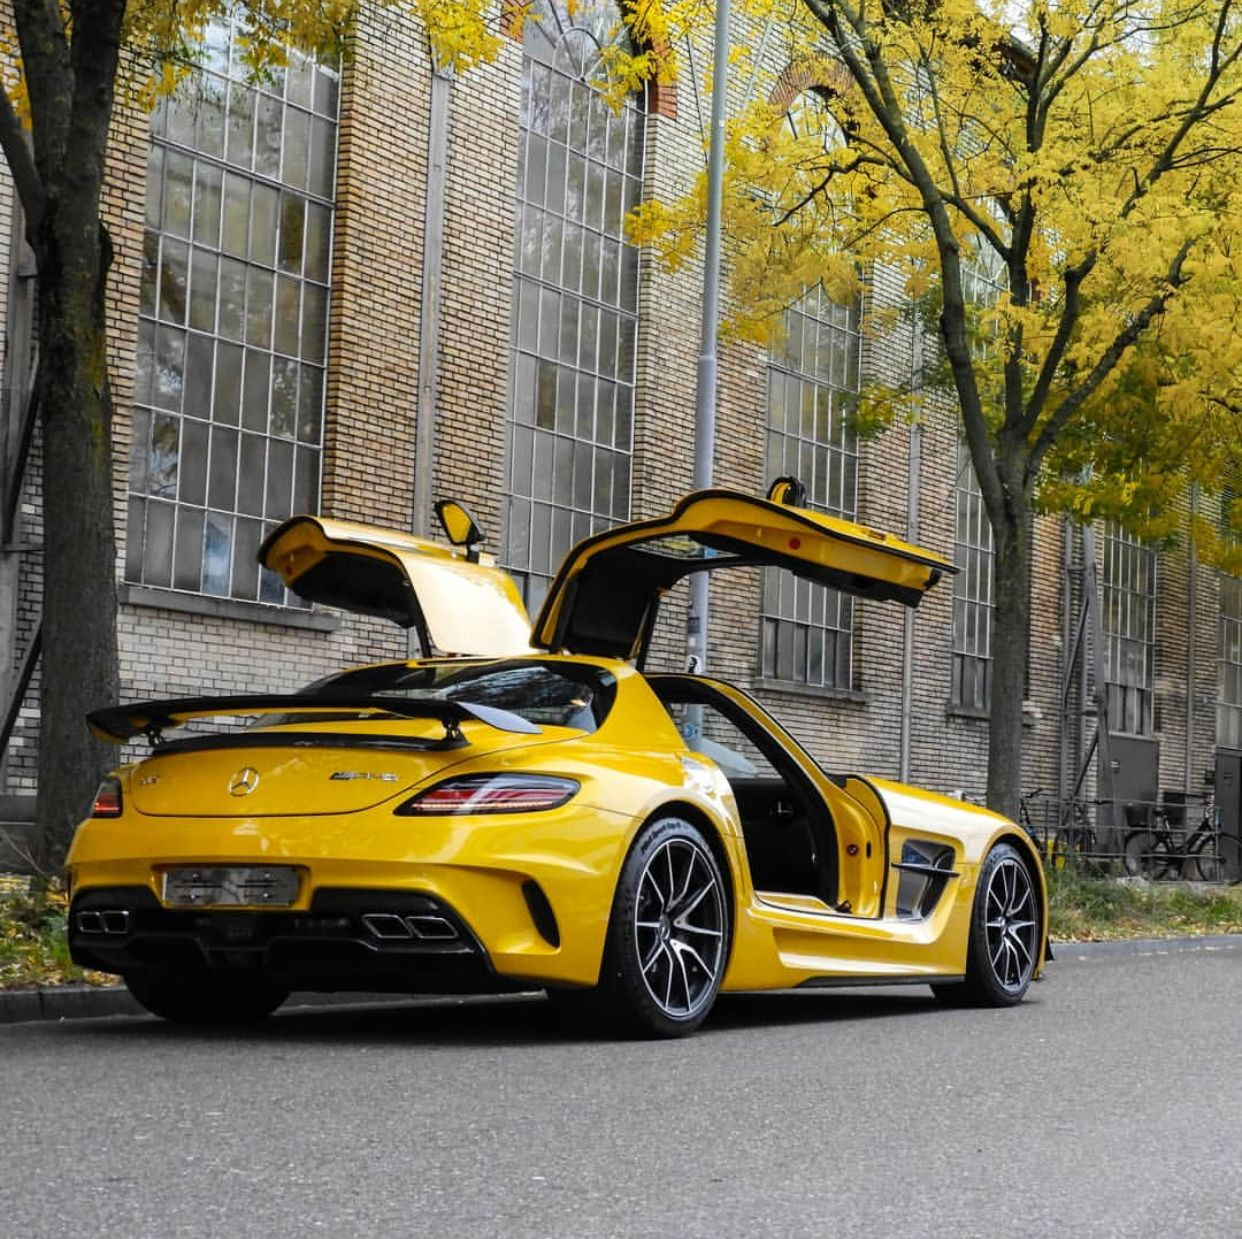 Mercedes Benz Sls Amg Black Series Painted In Solar Beam Yellow